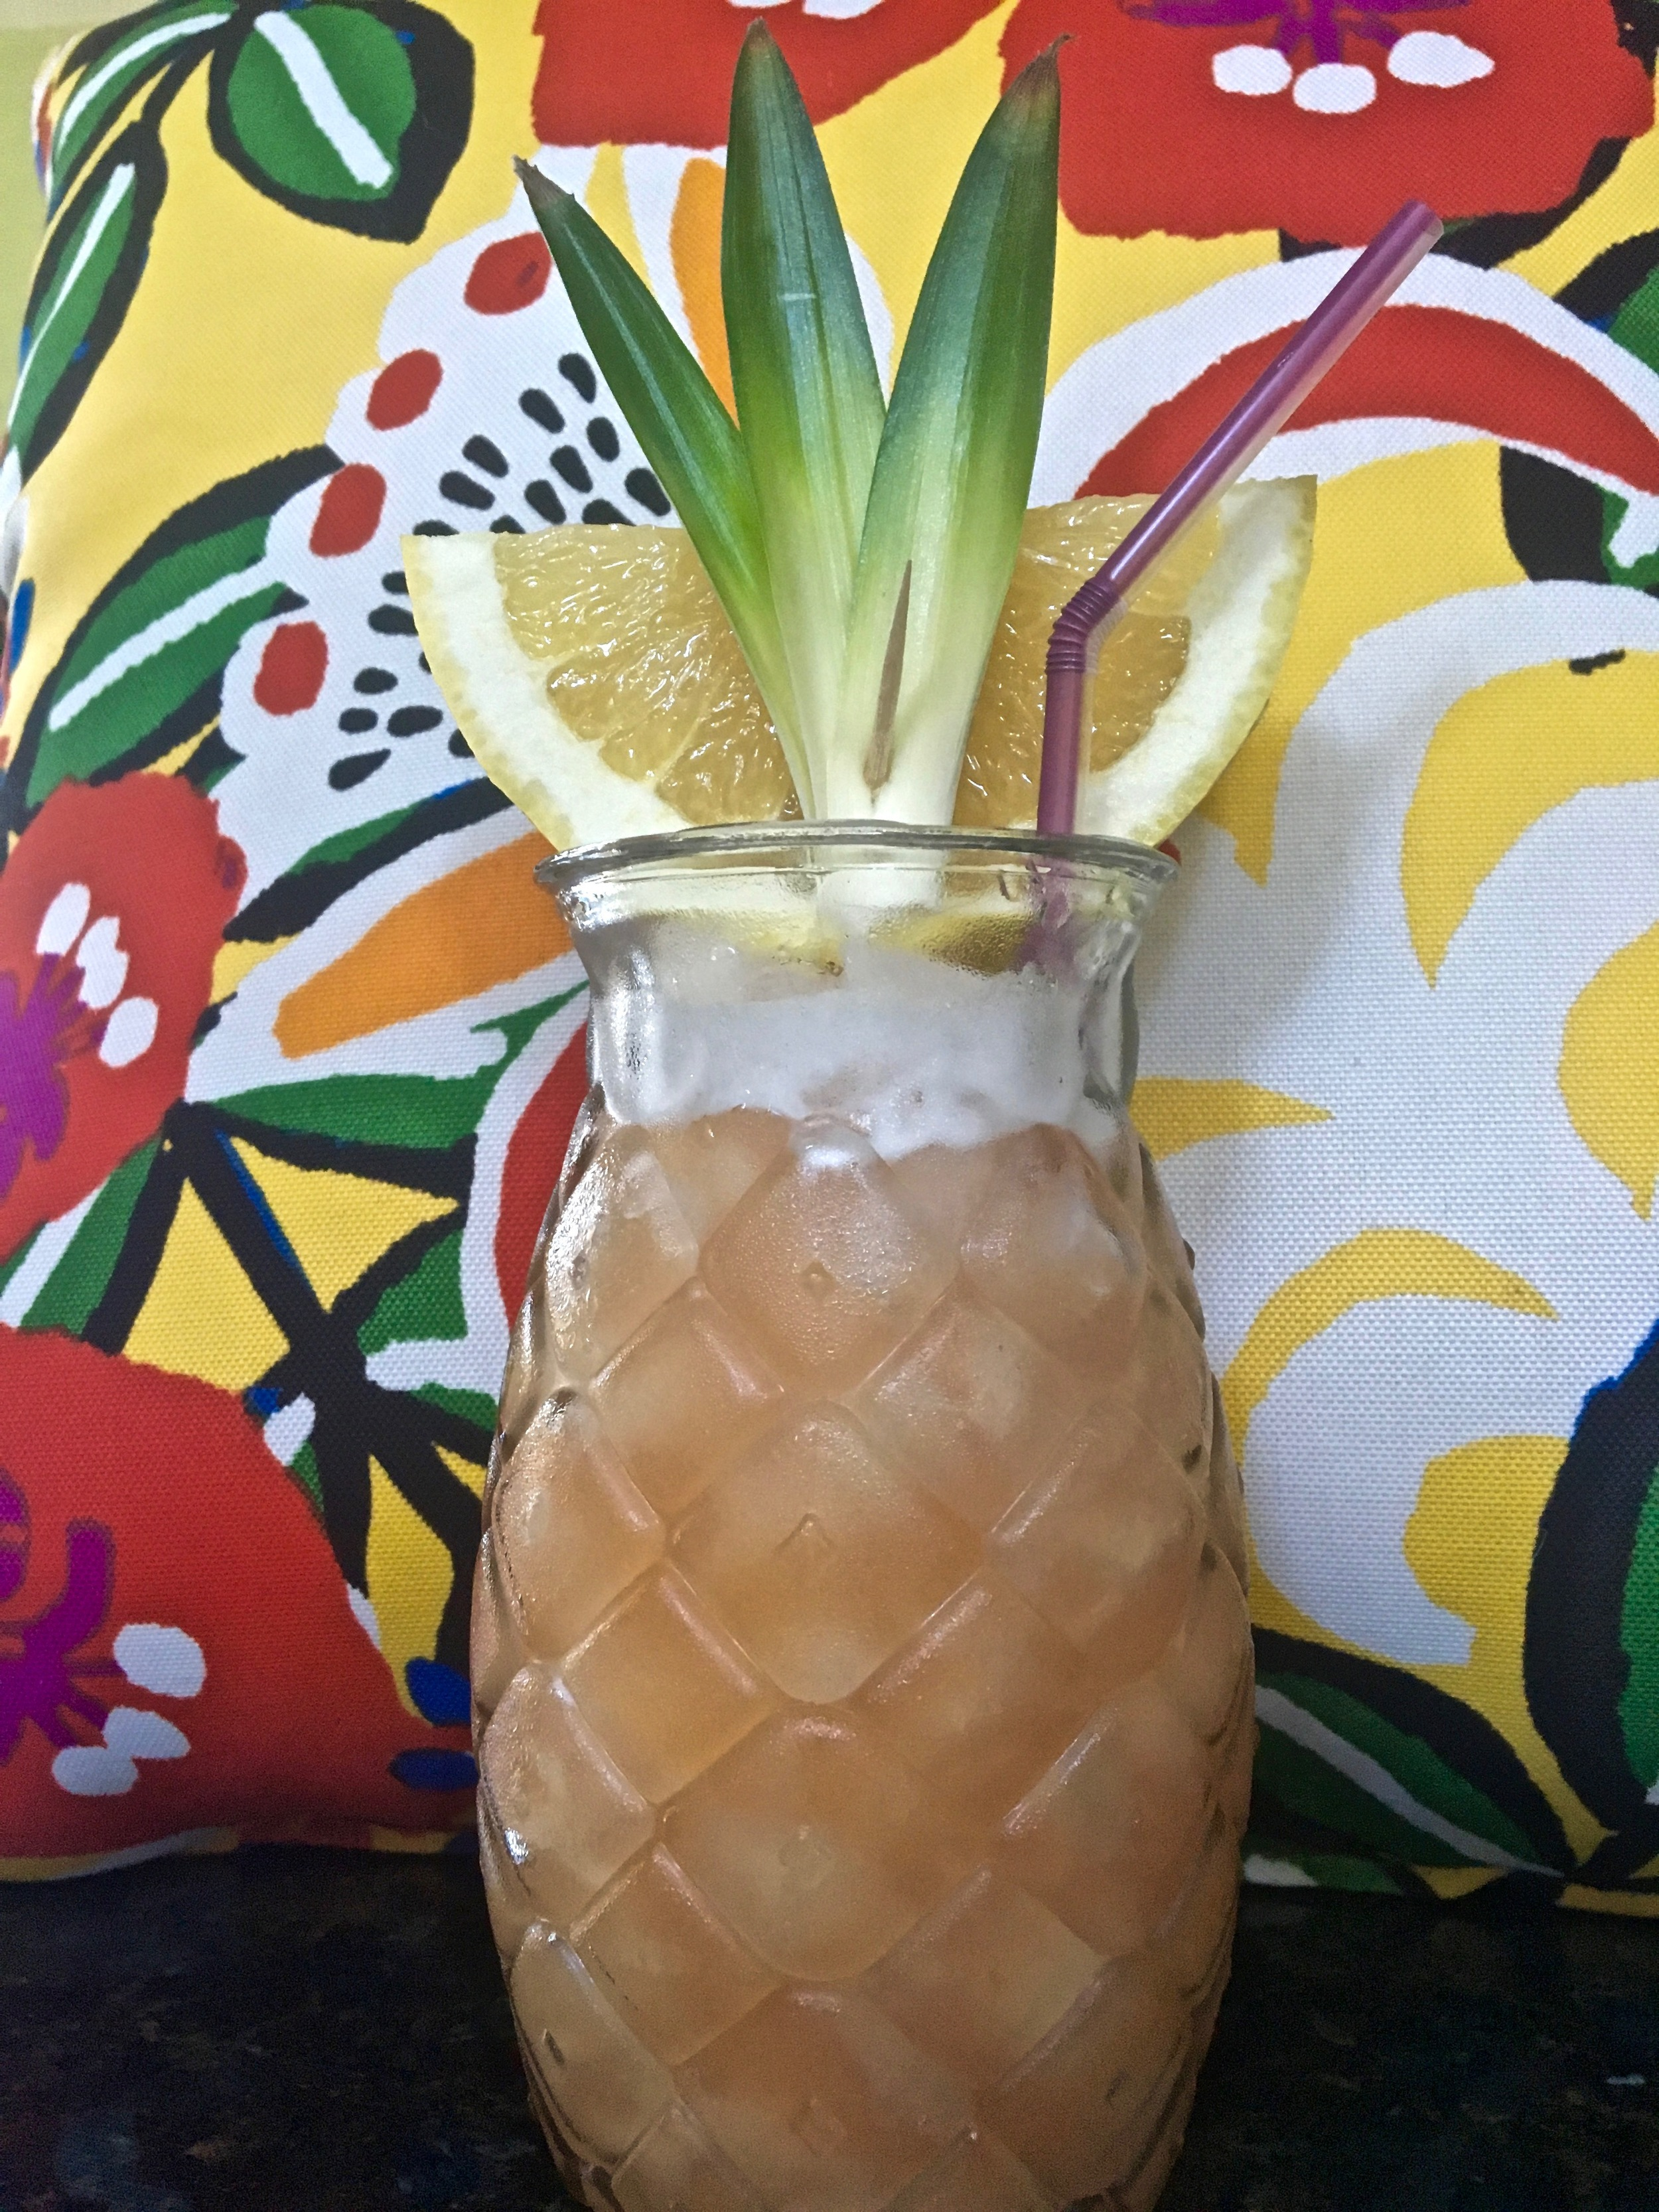 Tiki Italiano is the perfect Summer sipping cocktail.  Not too sweet and packs a potent enough punch for those who prefer not to dilute their cocktail with too much fluff.  Pineapple and grapefruit juices combined with Italian spirits and rum were meant to be together.